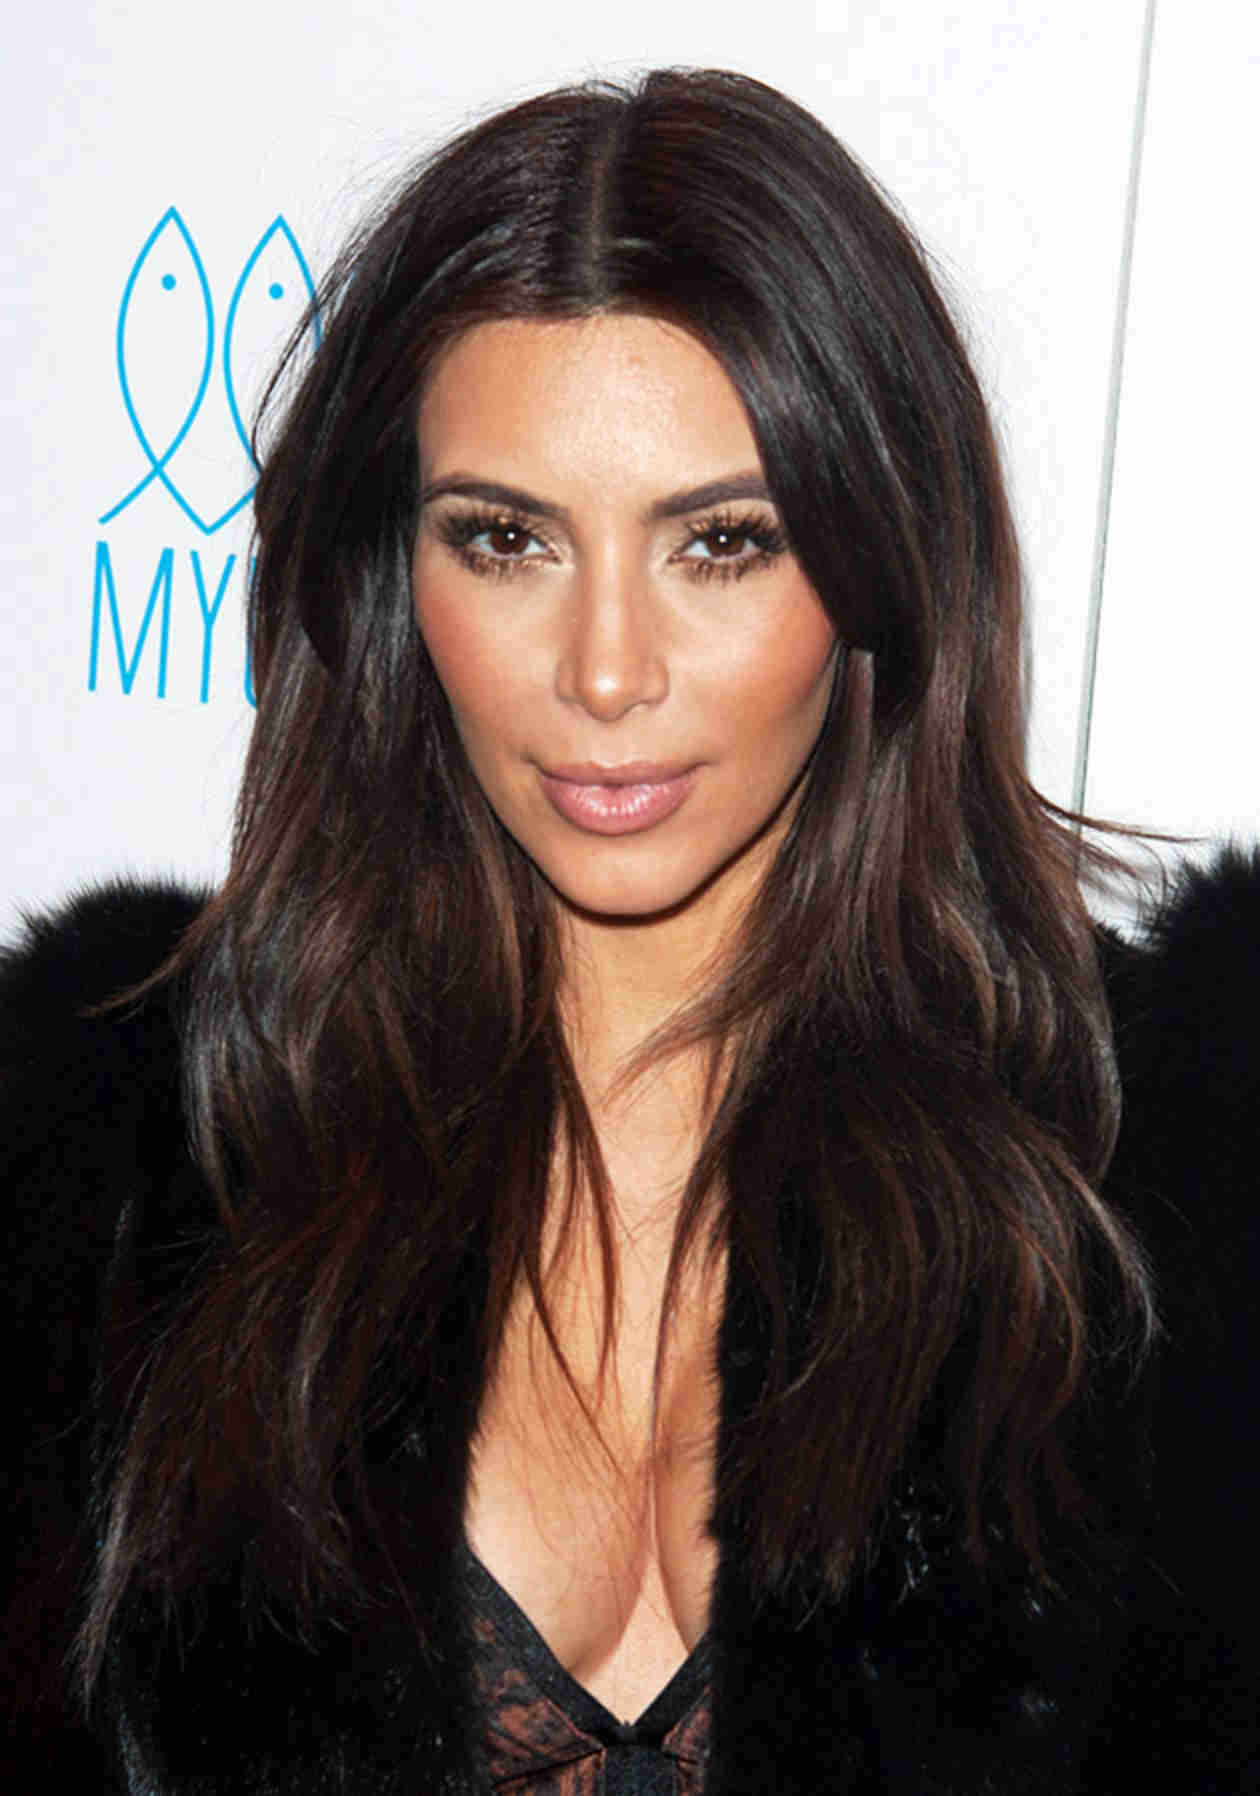 Kim Kardashian Employs Crazy Diet and Exercise Plan For Her Wedding — Report